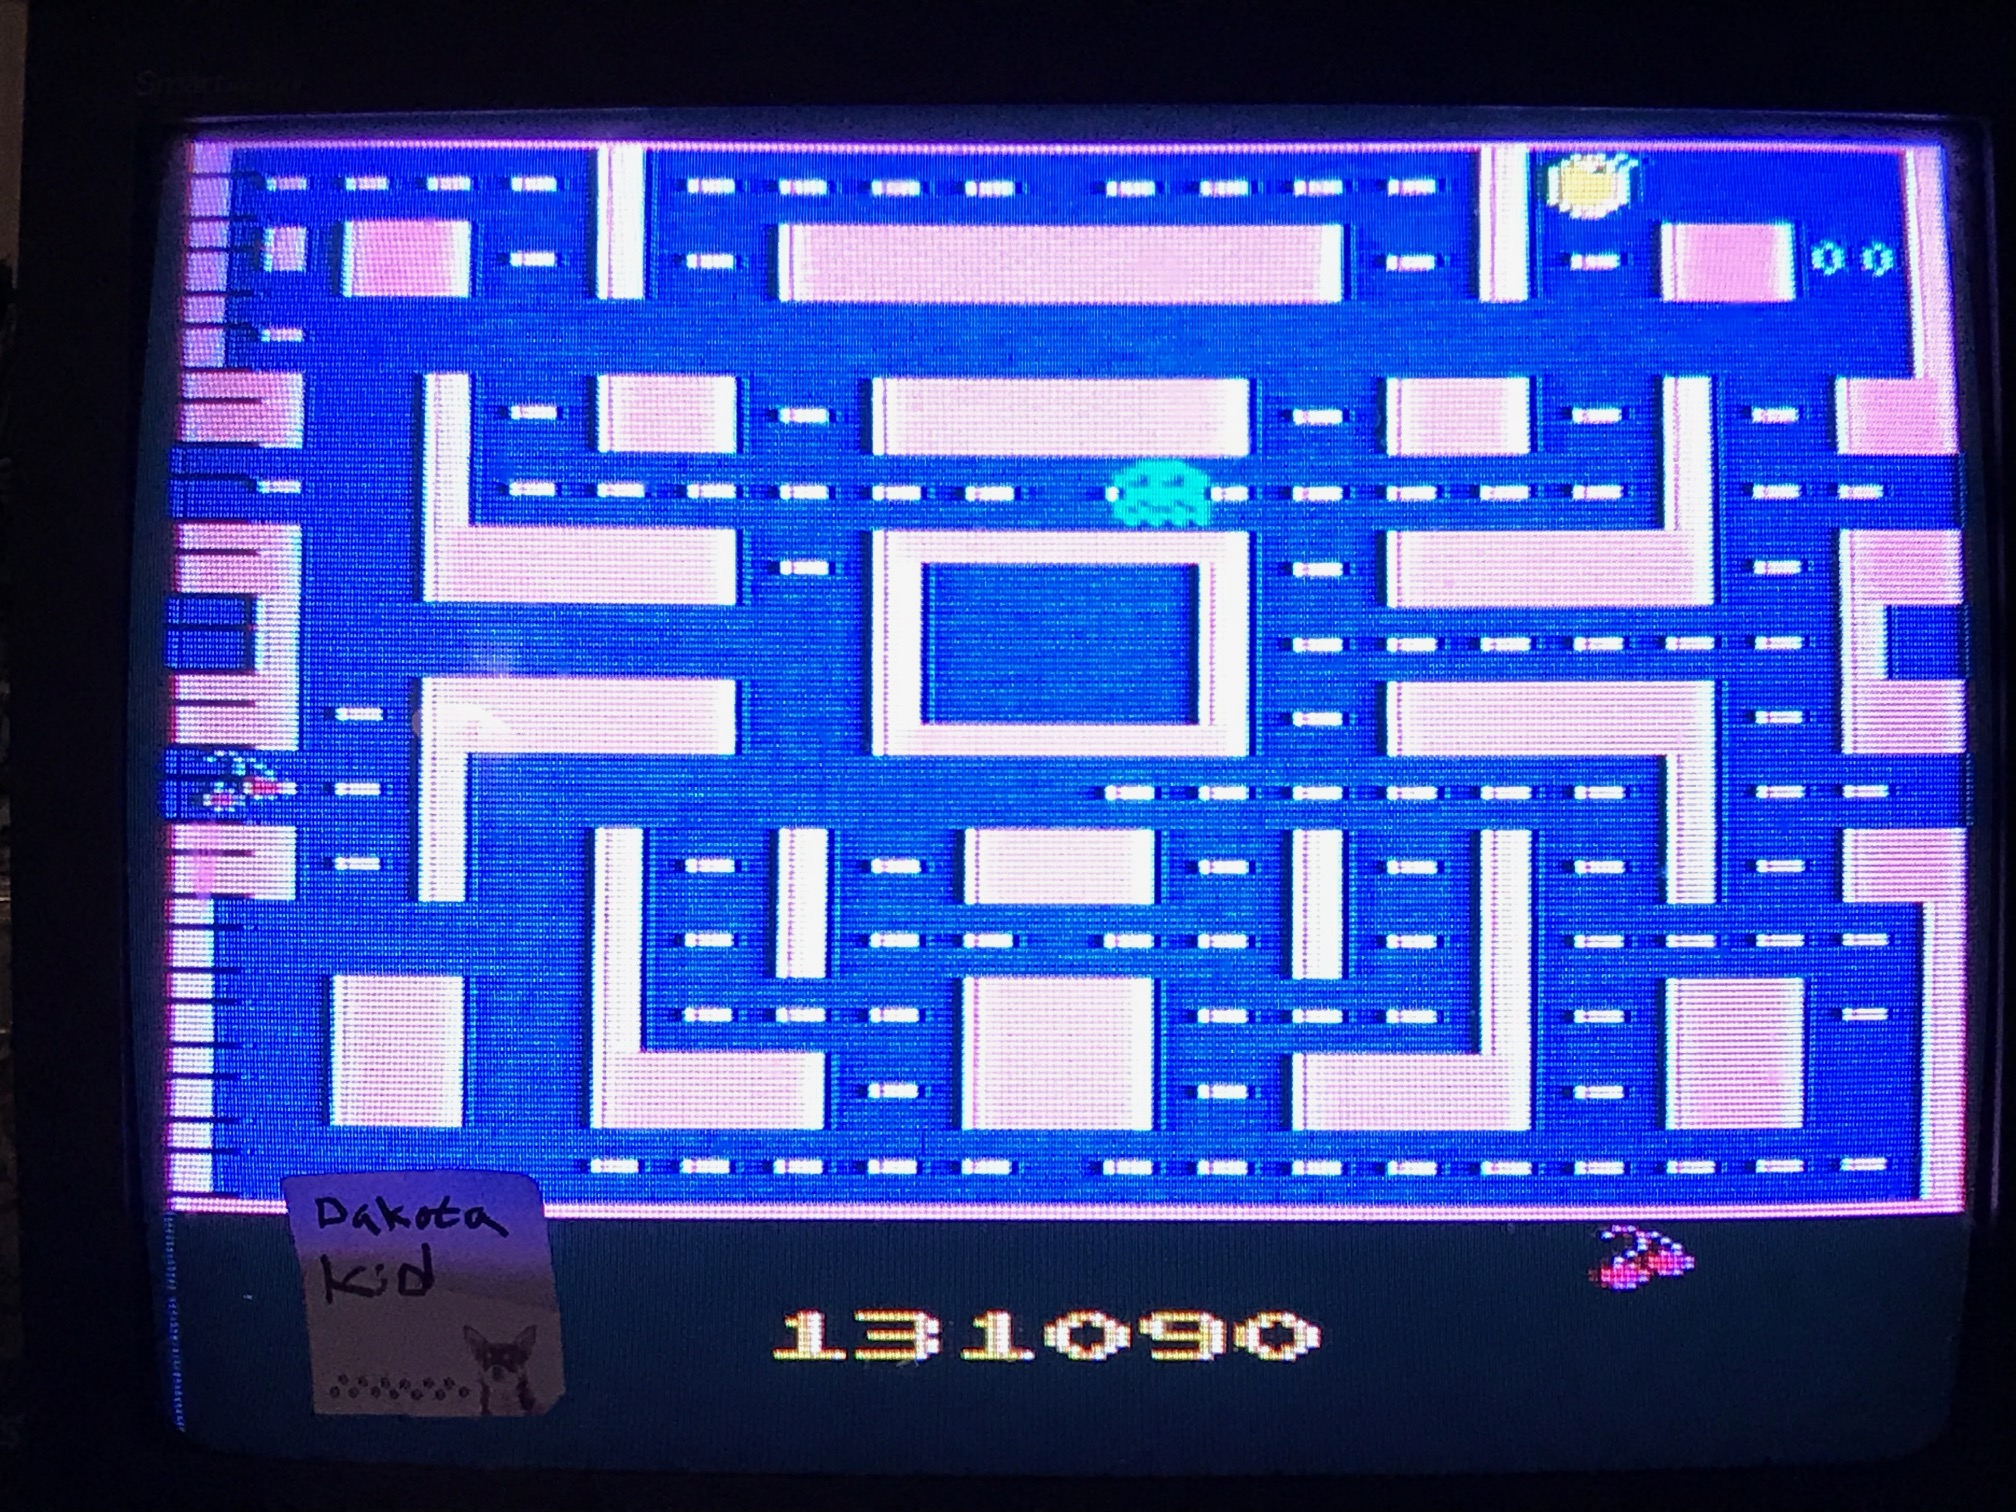 Ms. Pac-Man 131,090 points